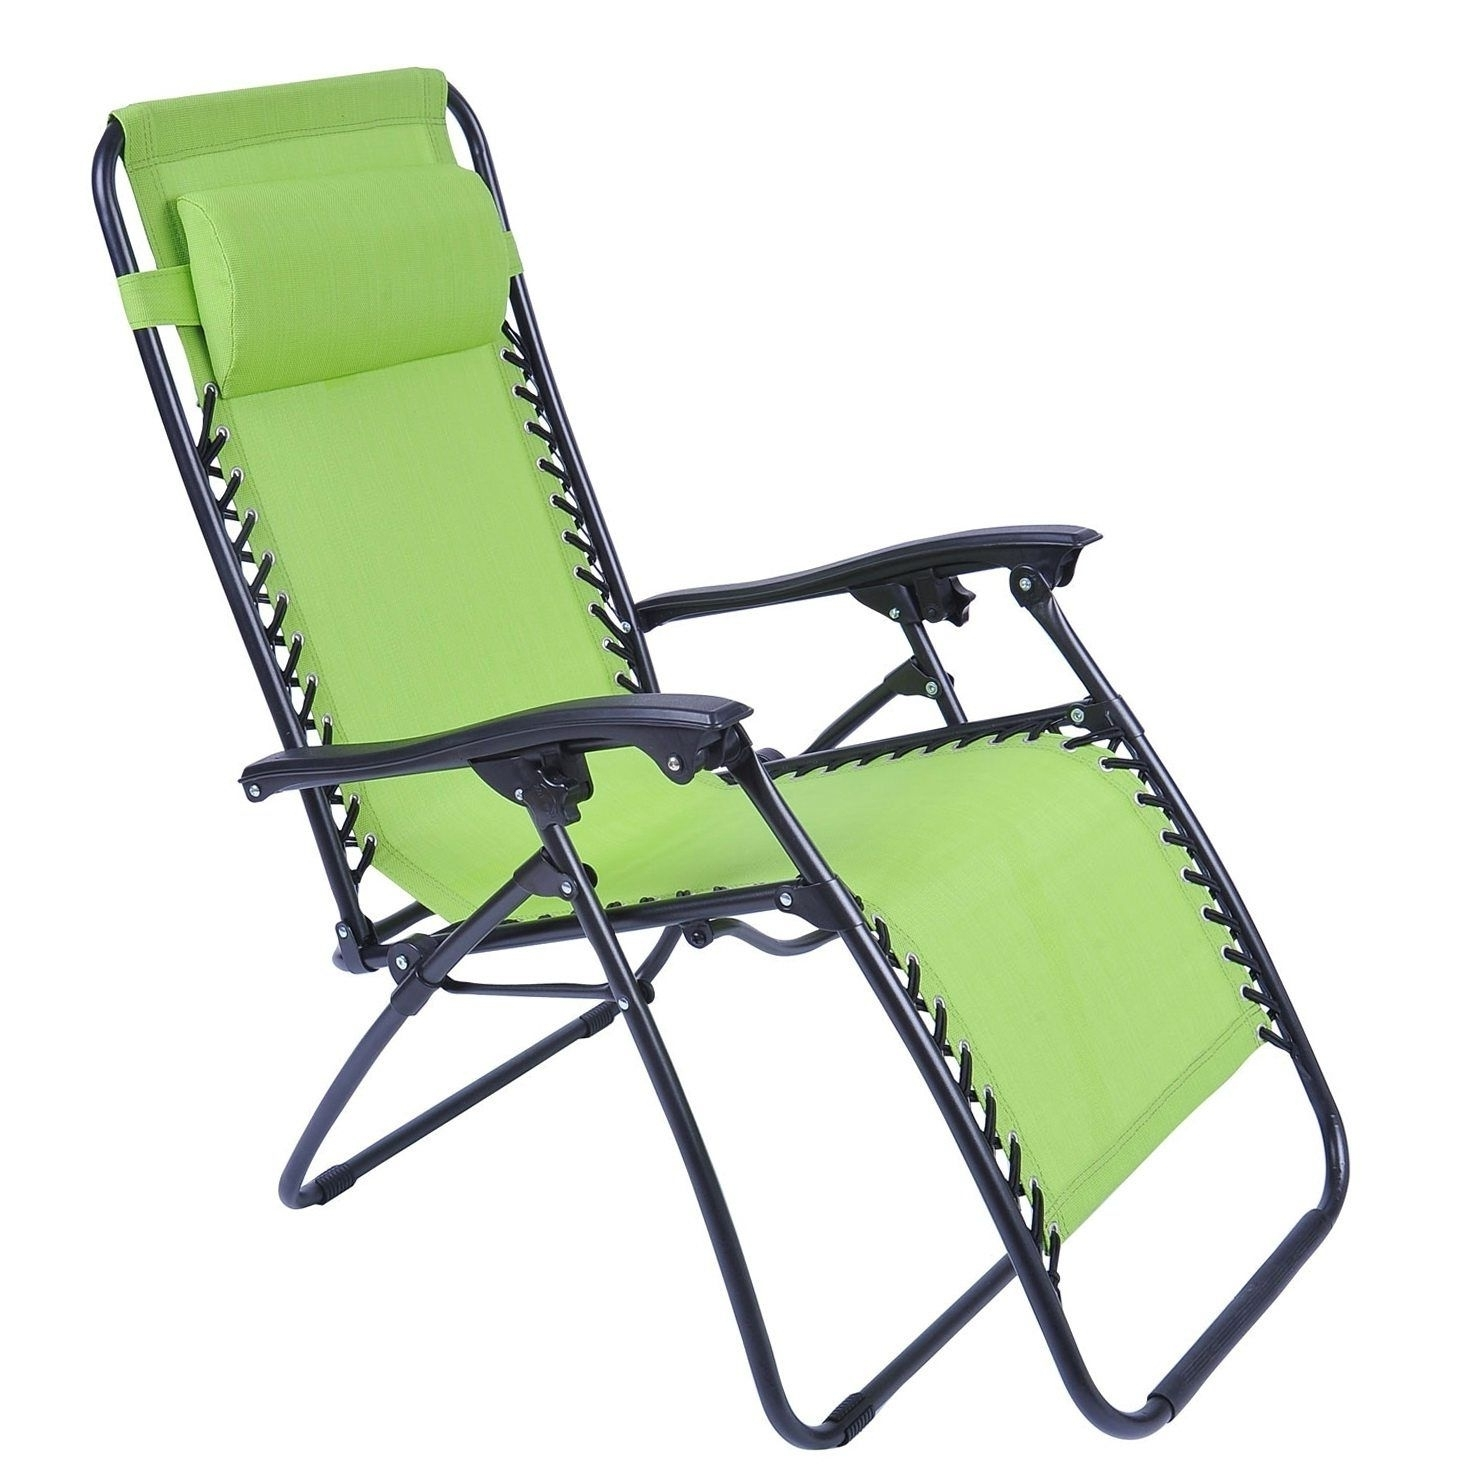 Lightweight Chaise Lounge Chairs Within Most Popular Lounge Chair Outdoor Folding Folding Chaise Lounge Chair Patio (View 2 of 15)